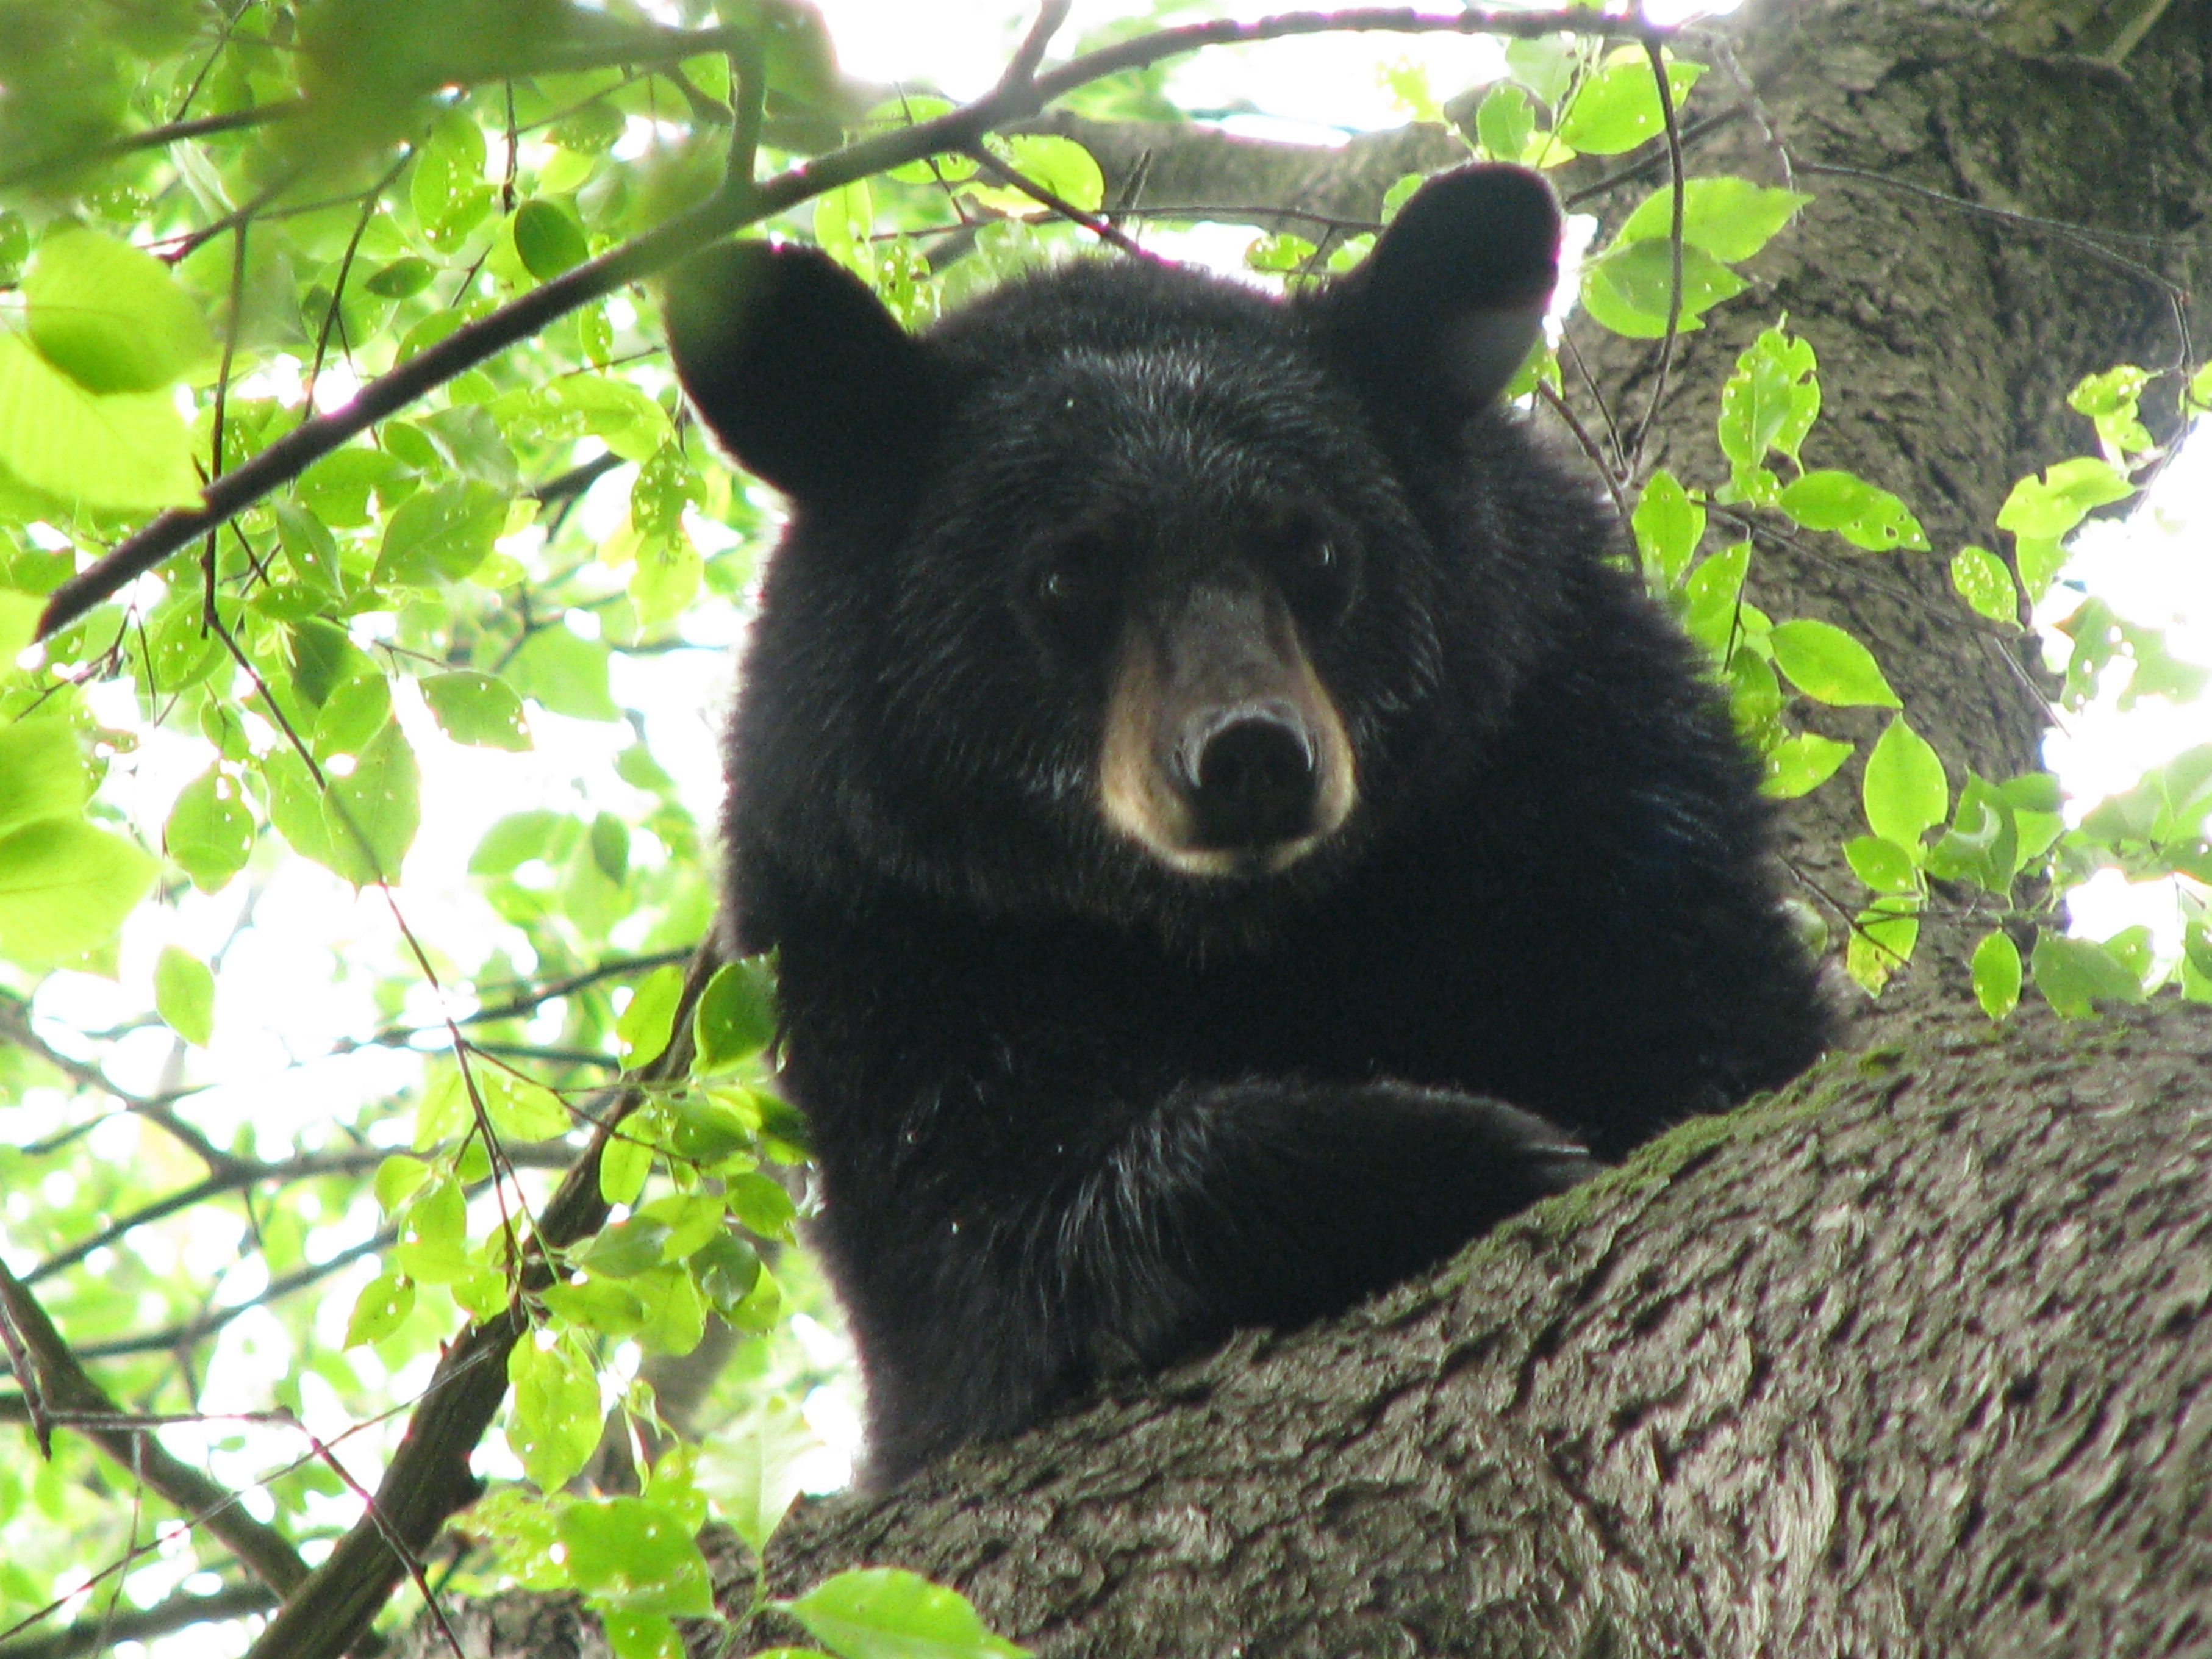 The Department of Environmental Conservation has proposed adding the harvesting of a bear along with deer during the annual Youth Hunt prior to the big-game hunting season.